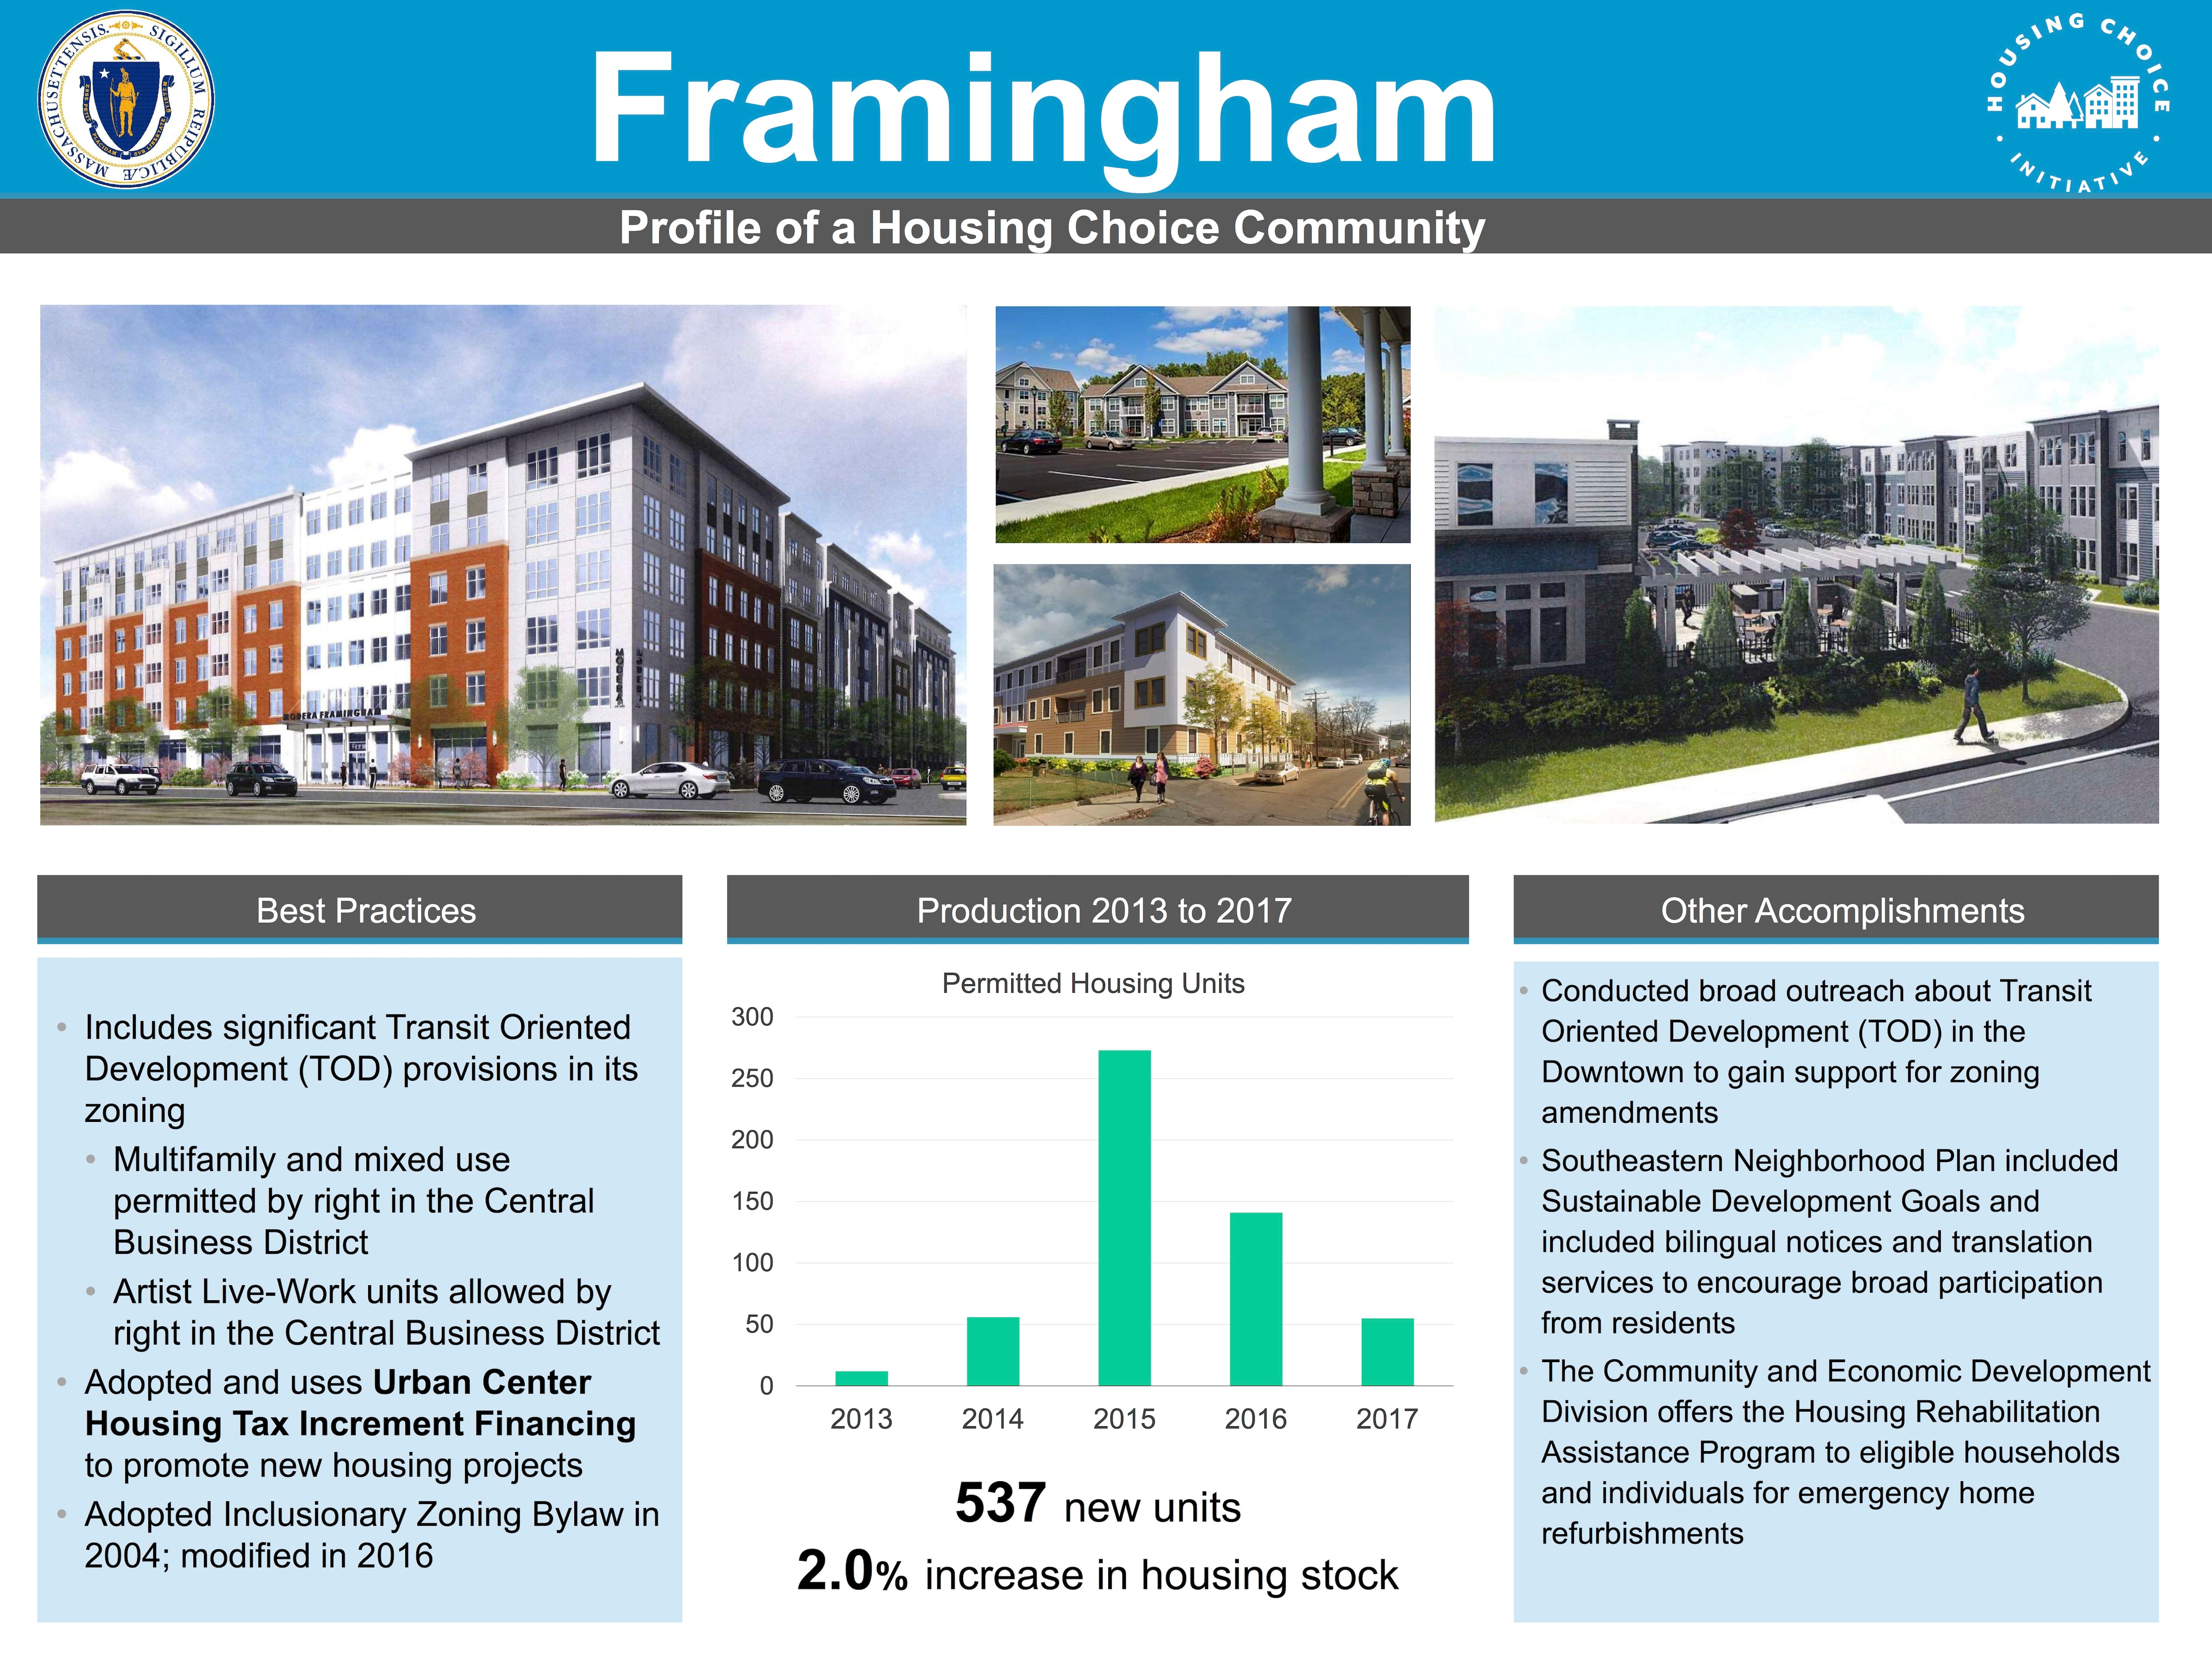 Profile of a Housing Choice Community - Framingham